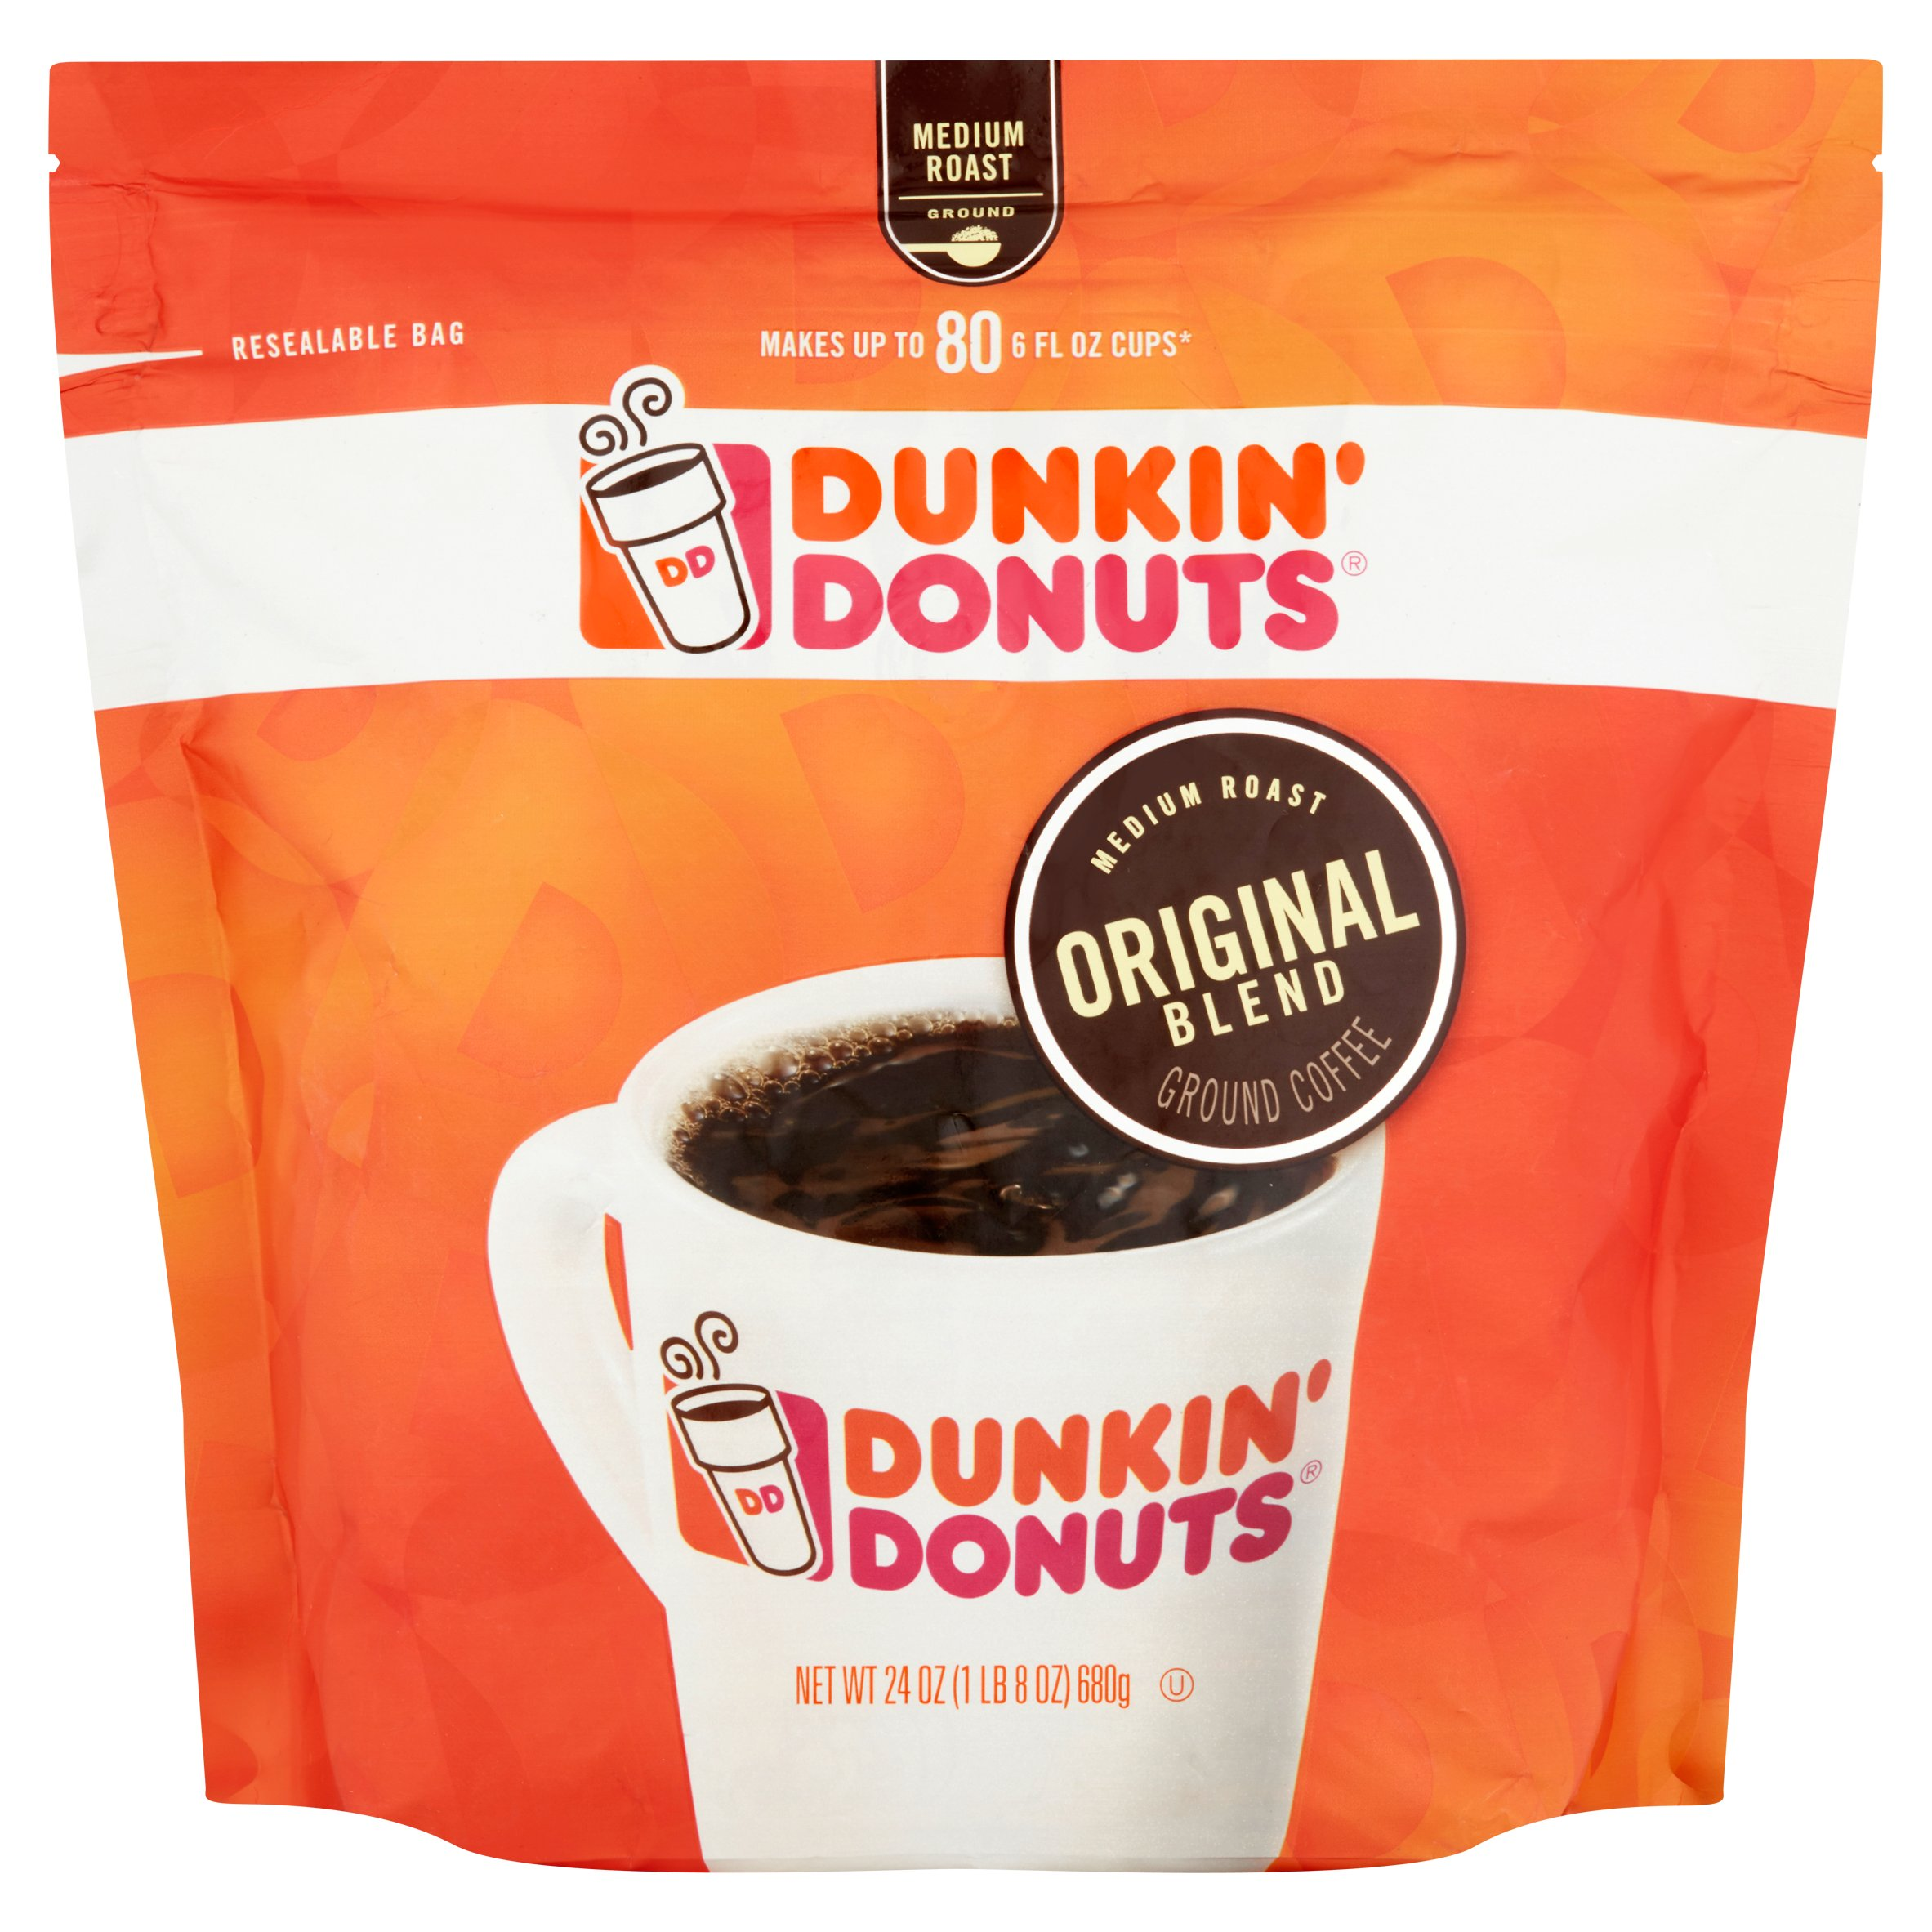 Dunkin' Donuts Original Blend Medium Roast Ground Coffee, 24 oz